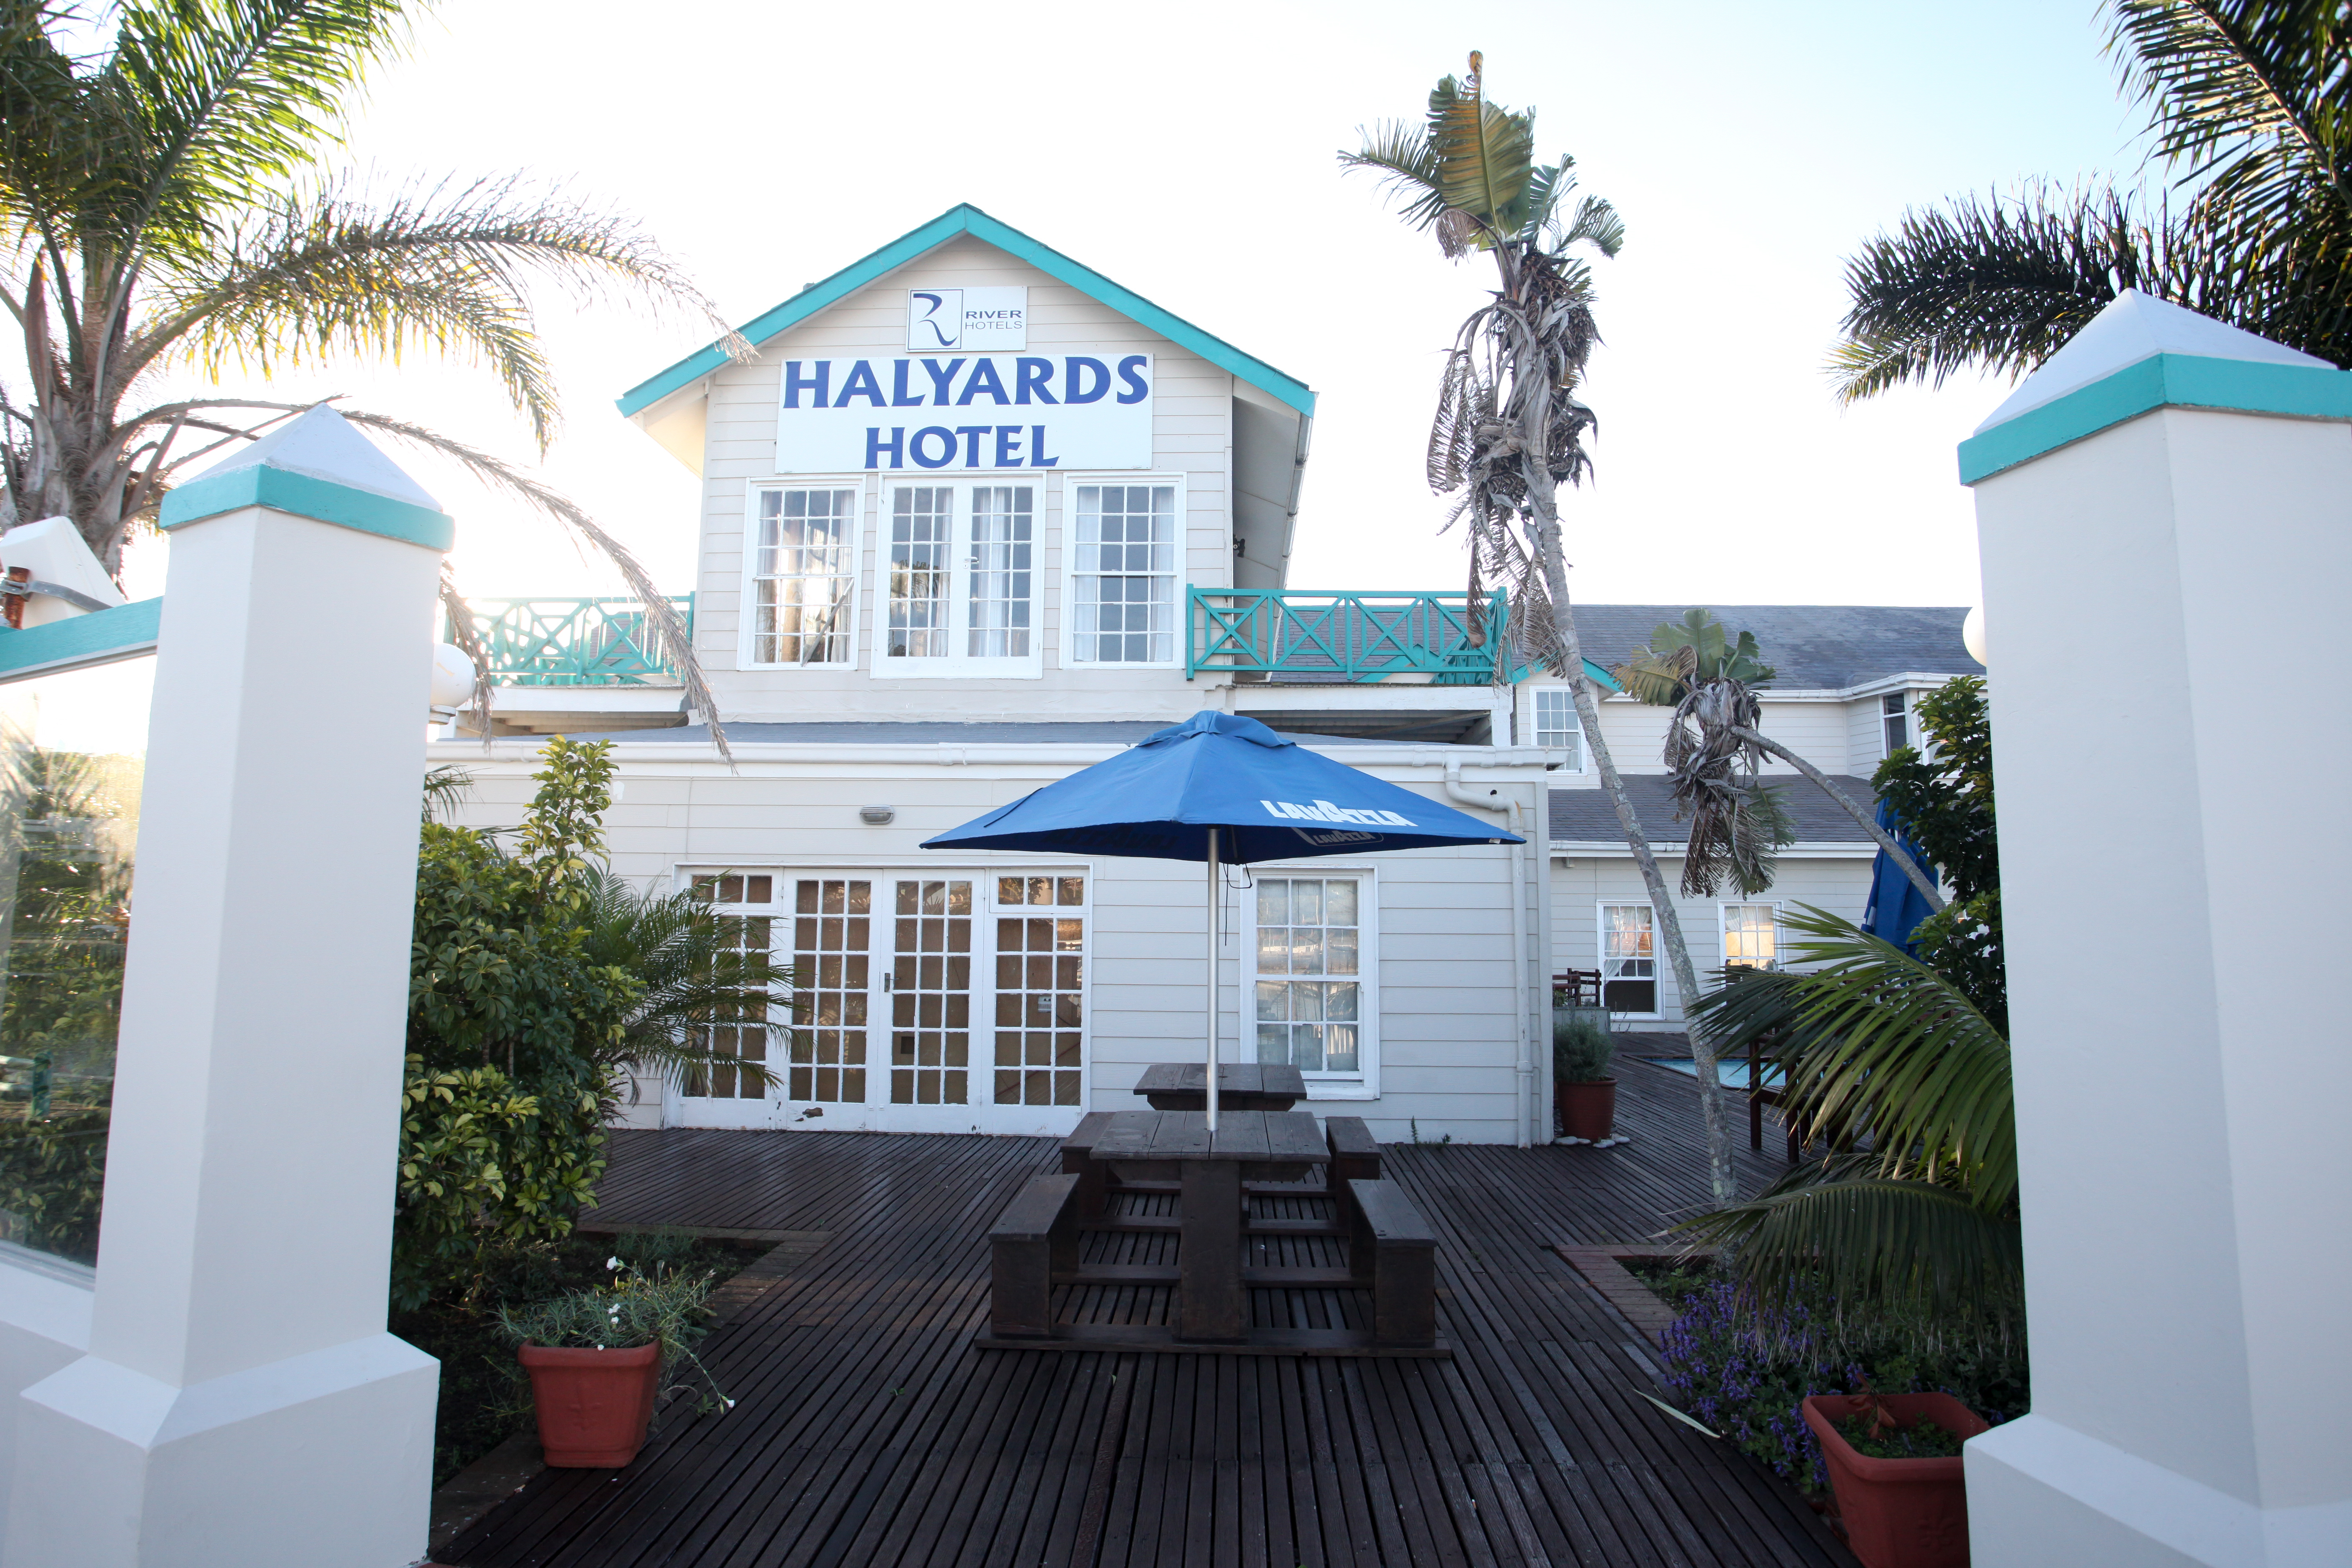 Halyards Hotel and Spa